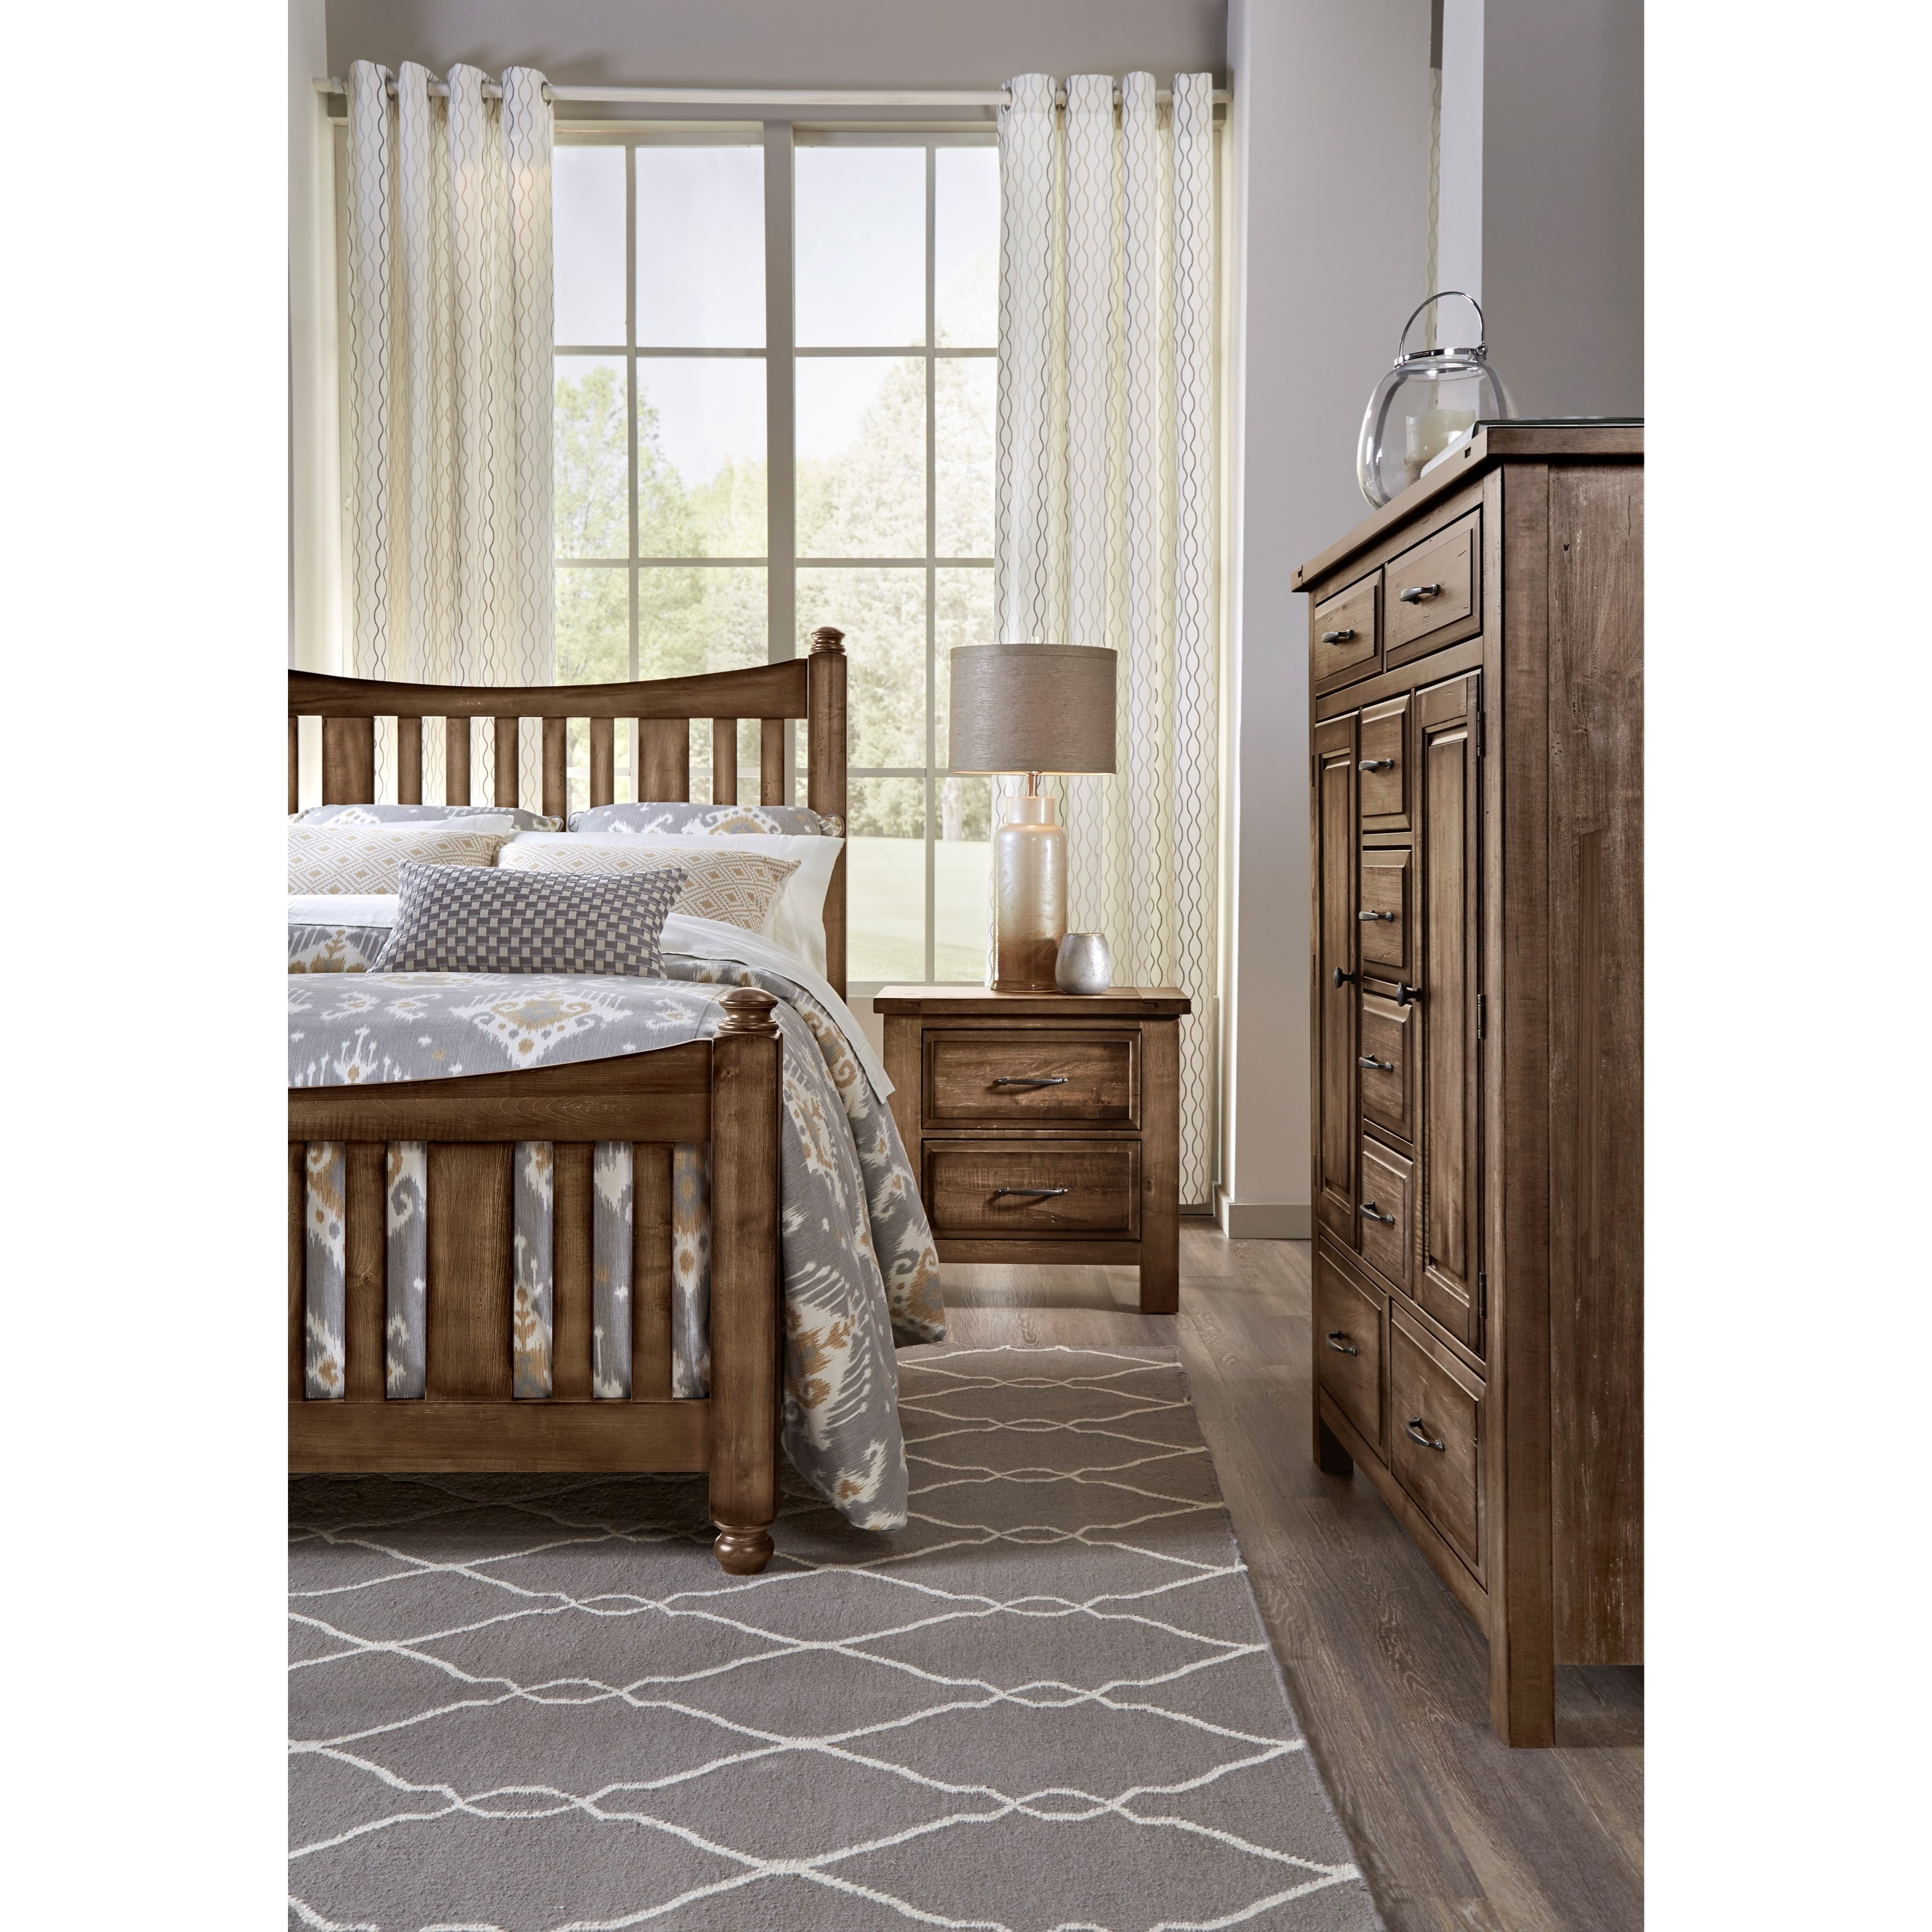 Maple Road Queen Bedroom Group by Artisan & Post at Rooms and Rest